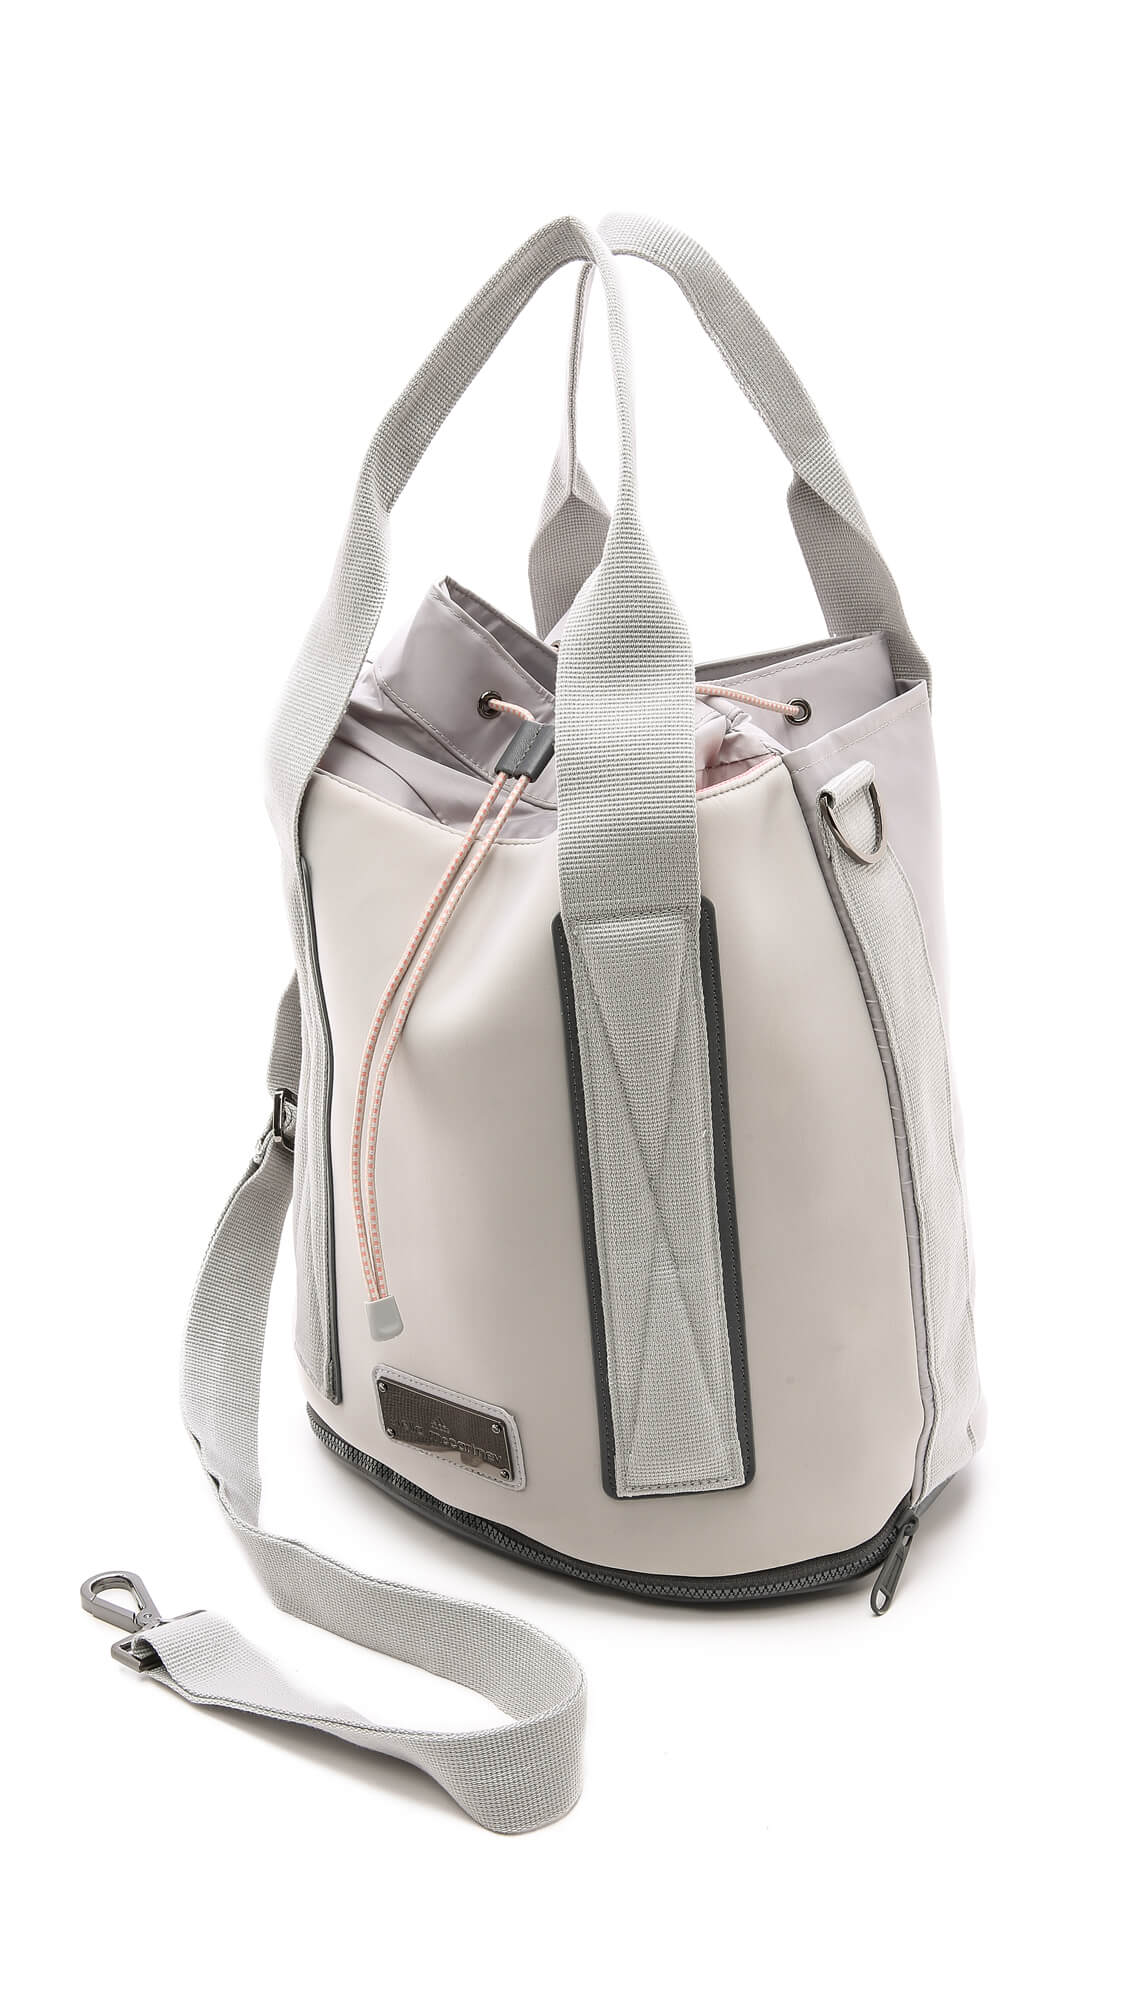 Comparable Existe ligado  Tennis bag by Adidas by Stella McCartney - Design i need